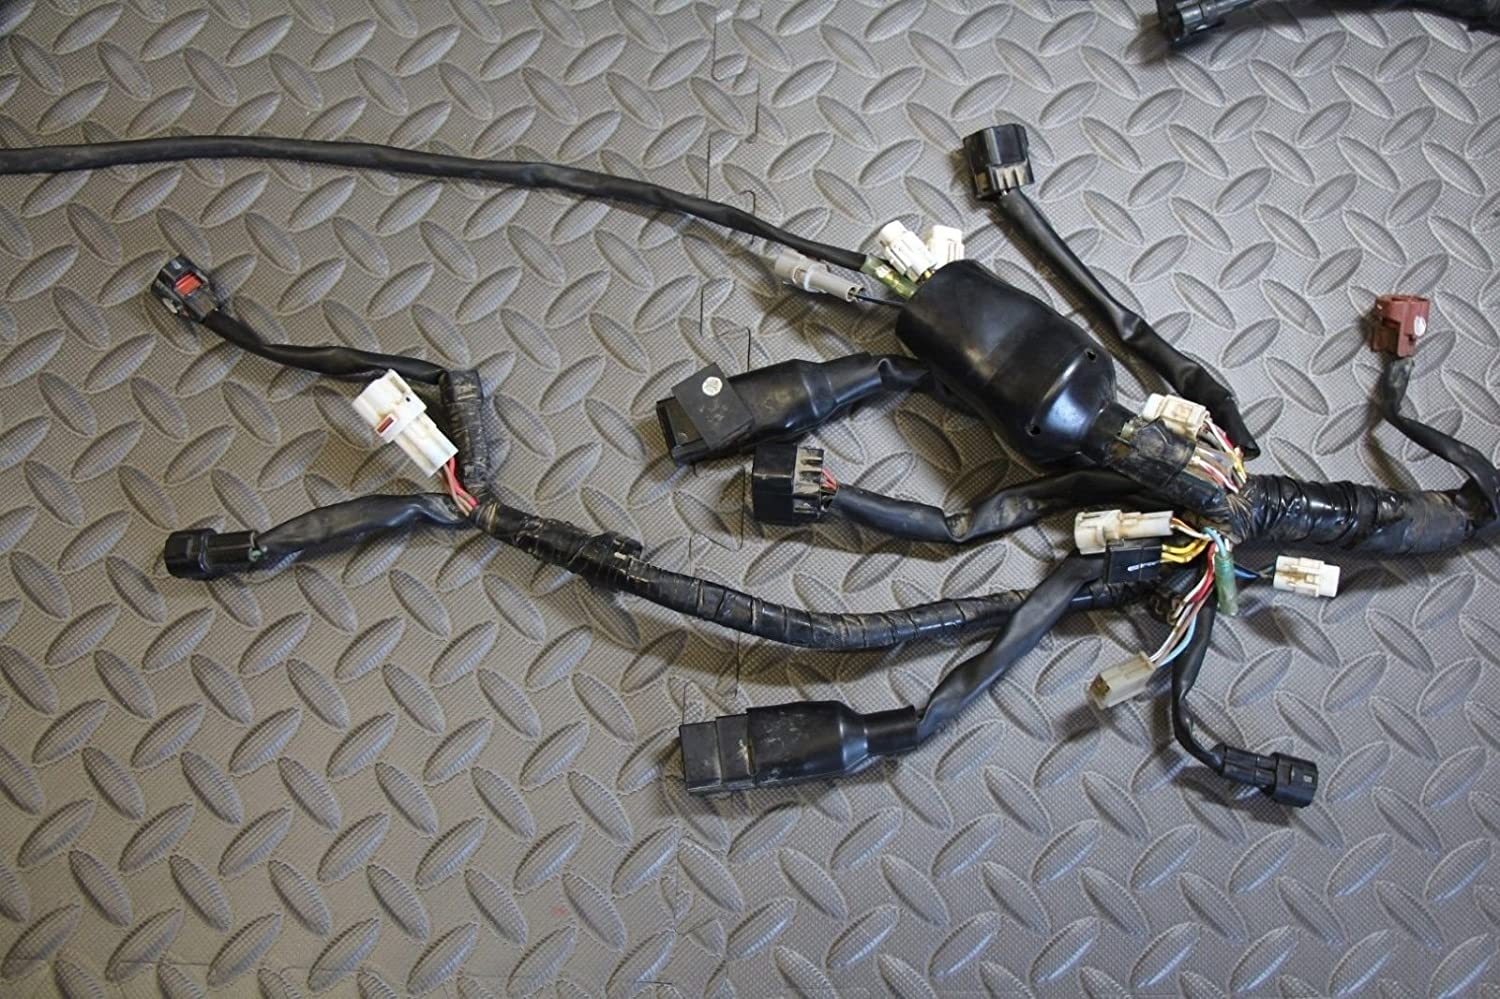 81GelPT91XL._SL1500_ amazon com 2006 2009 yamaha yfz450 complete facotry oem uncut 2006 yfz450 wiring harness at edmiracle.co